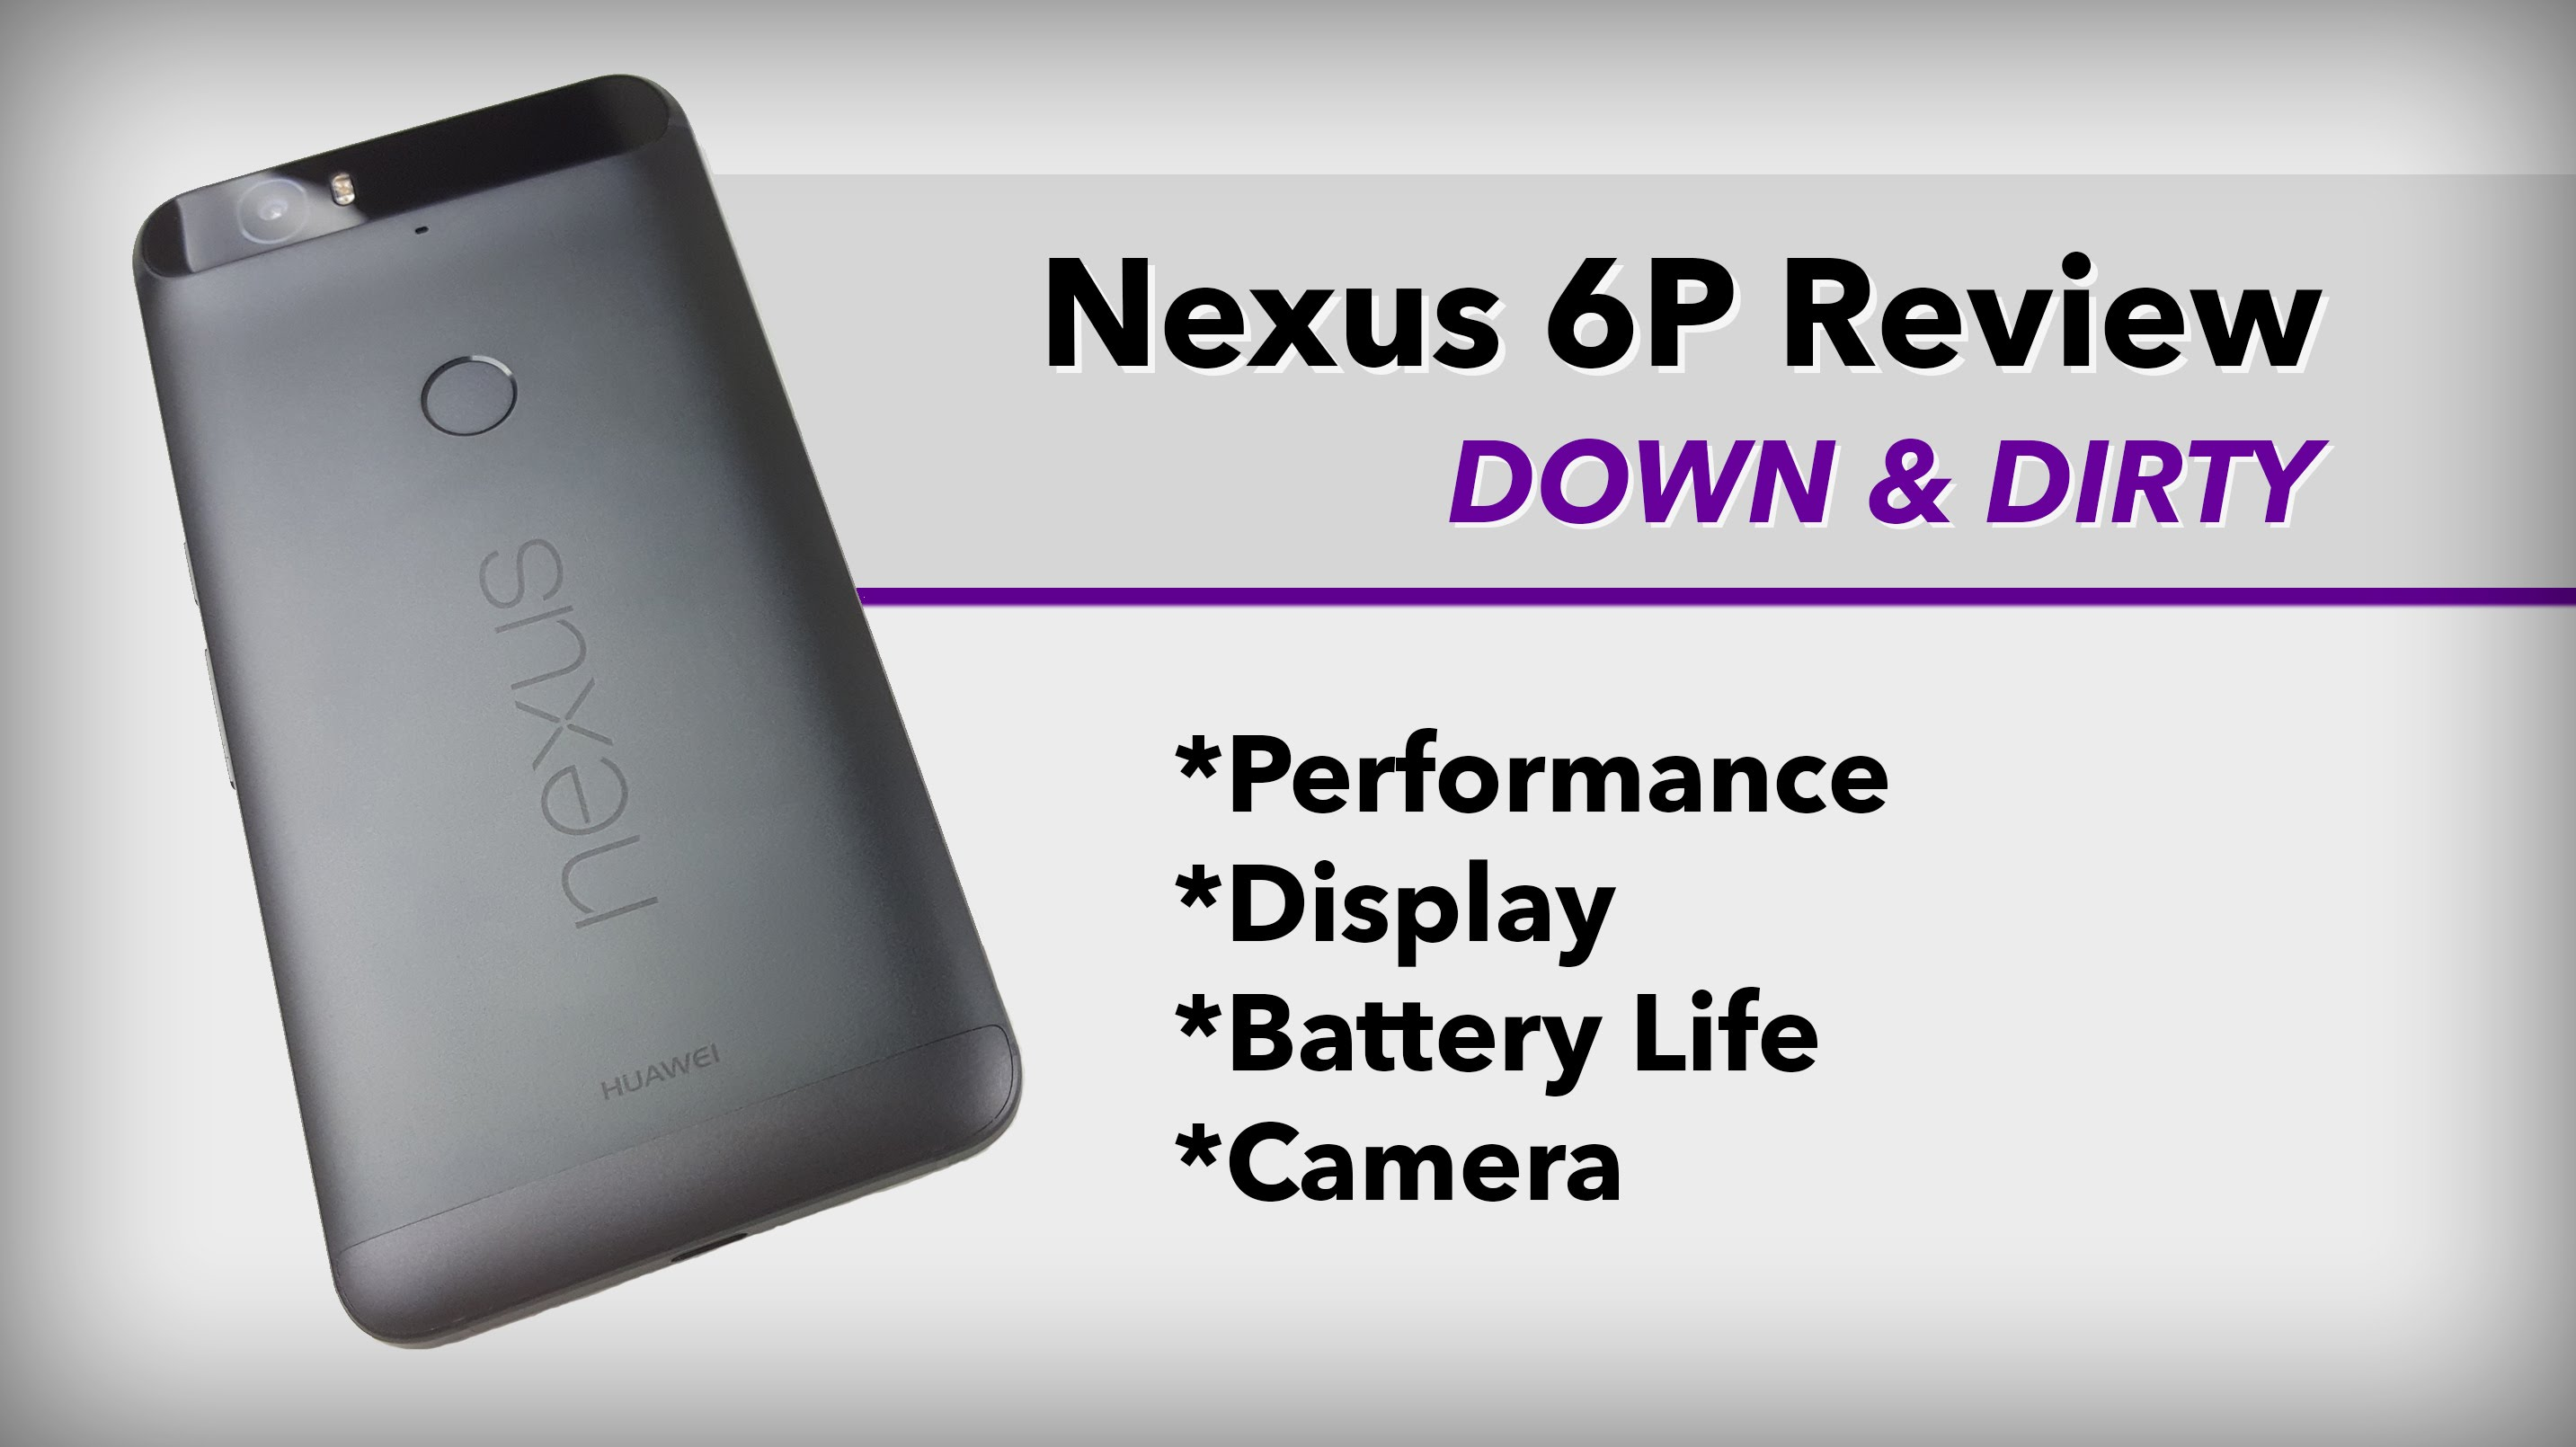 Nexus 6P Review: Down and Dirty